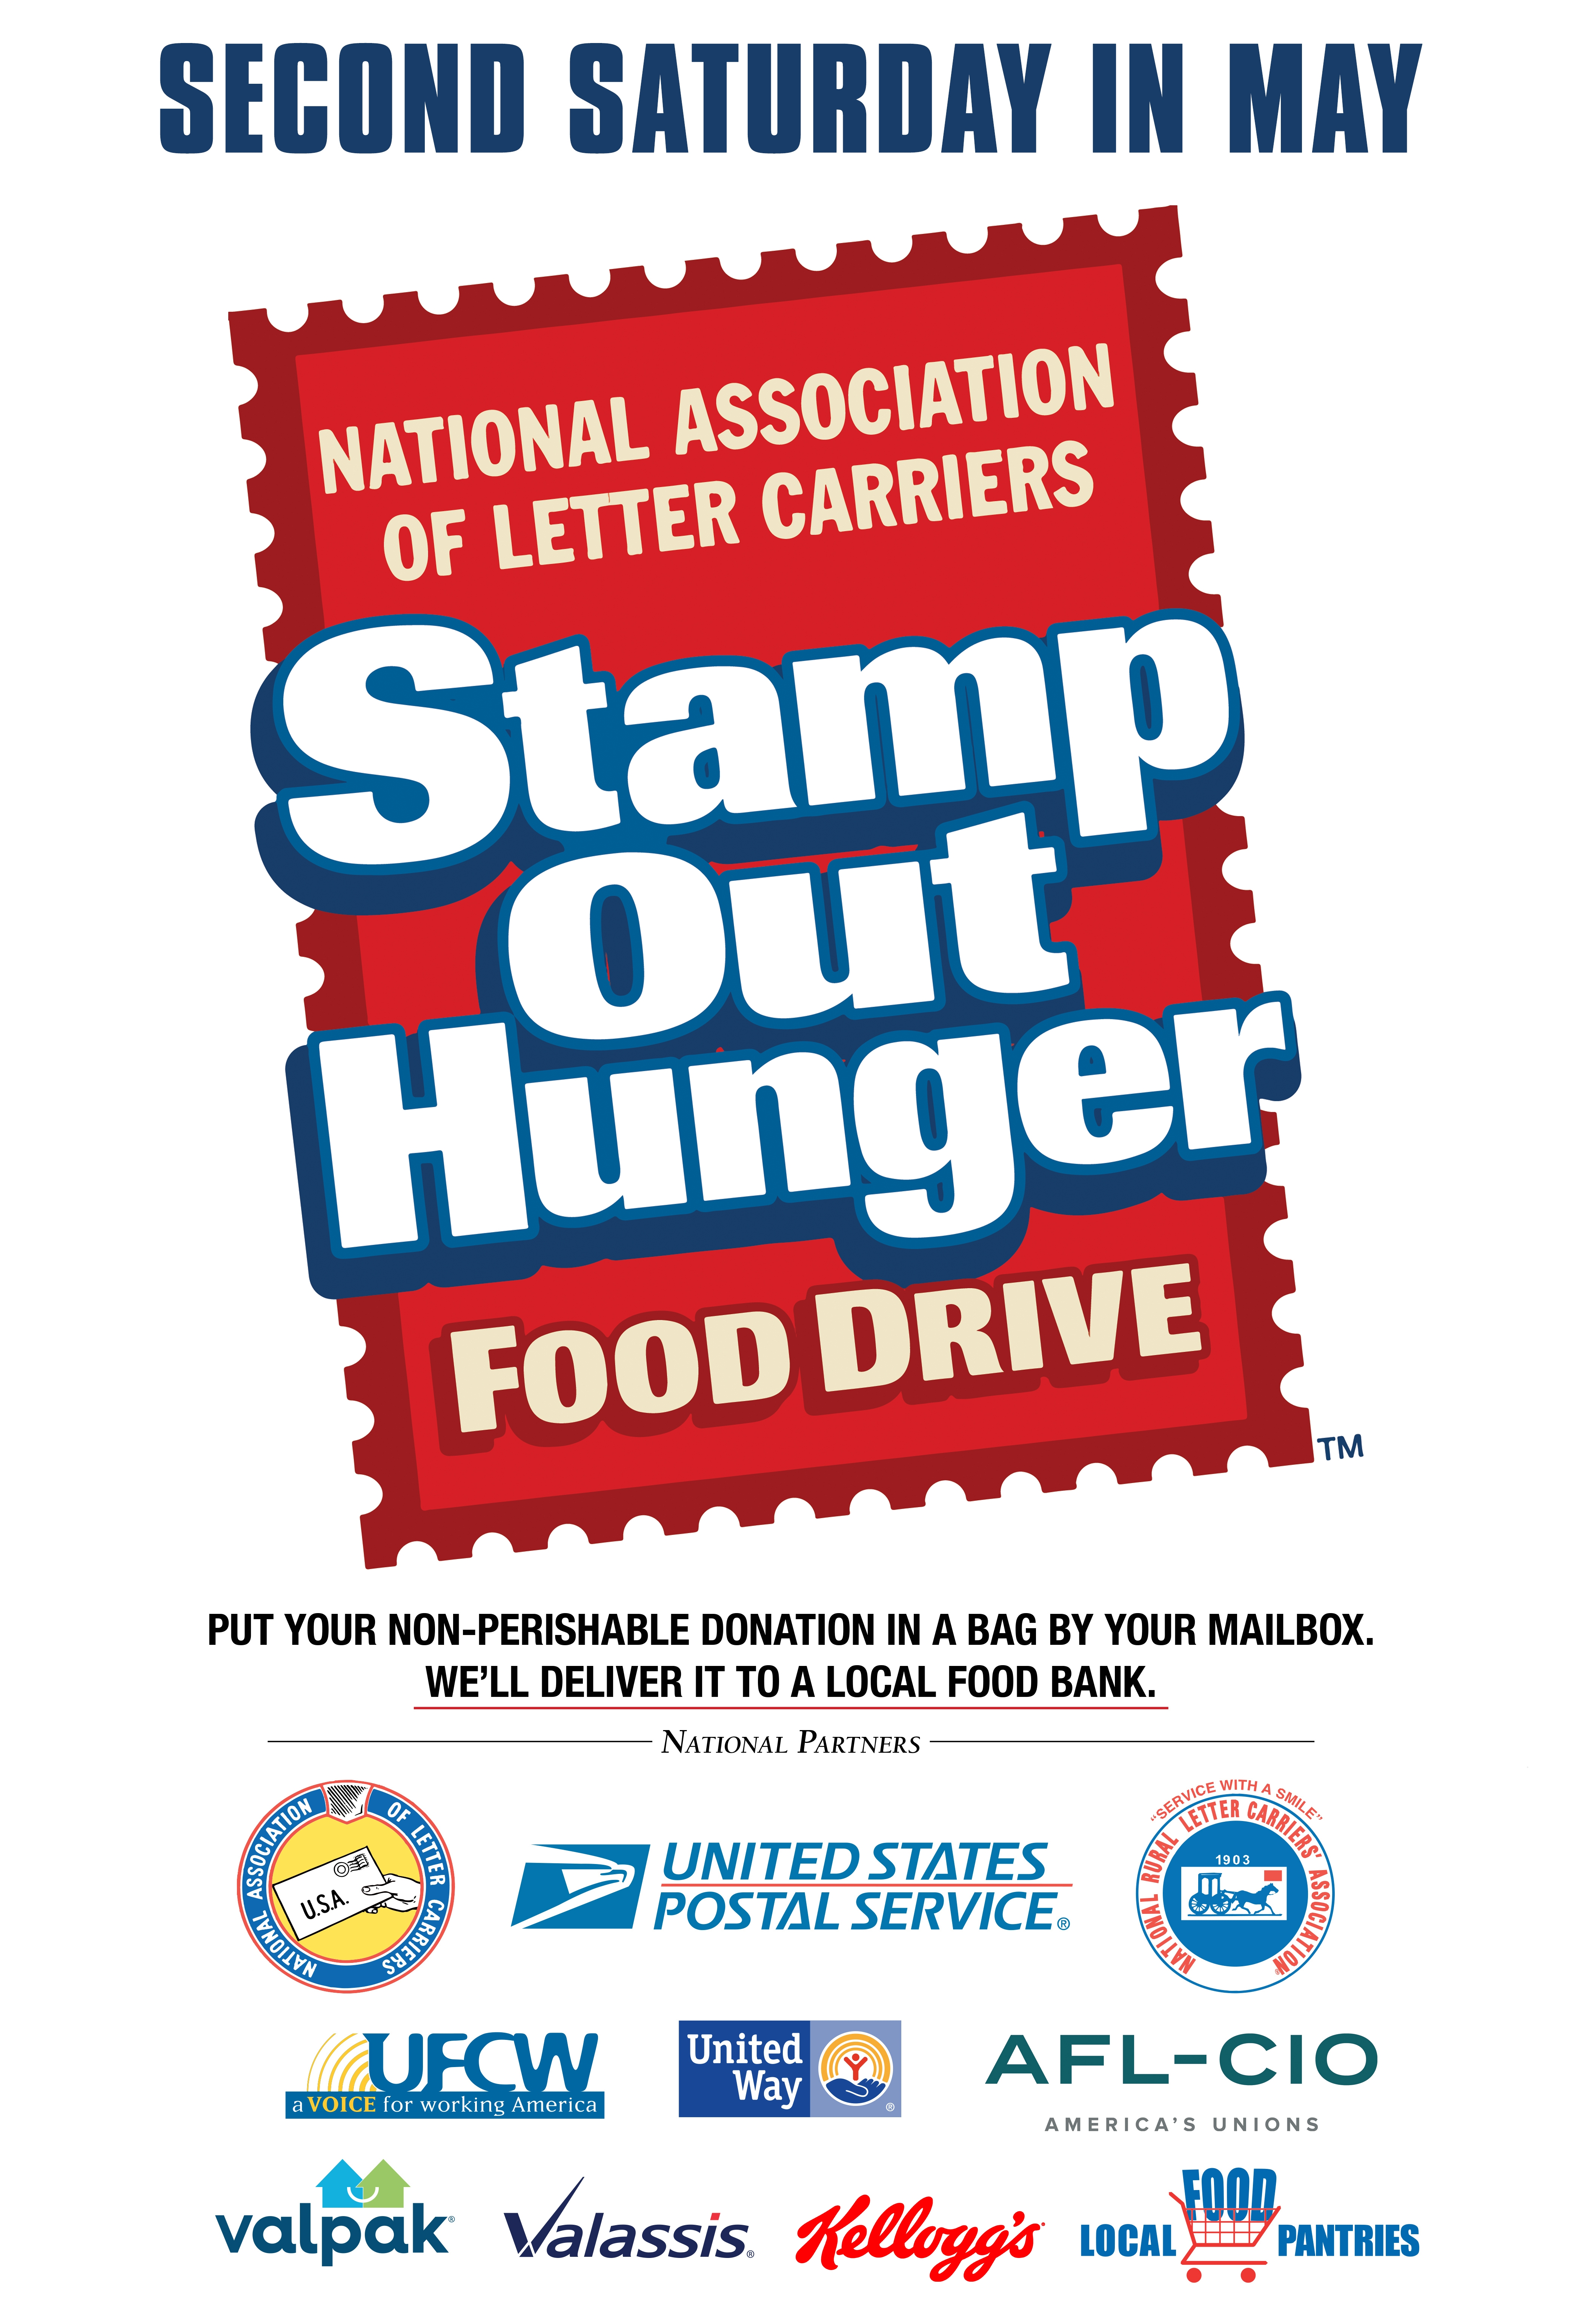 Refb Letter Carriers Stamp Out Hunger Food Drive Refb